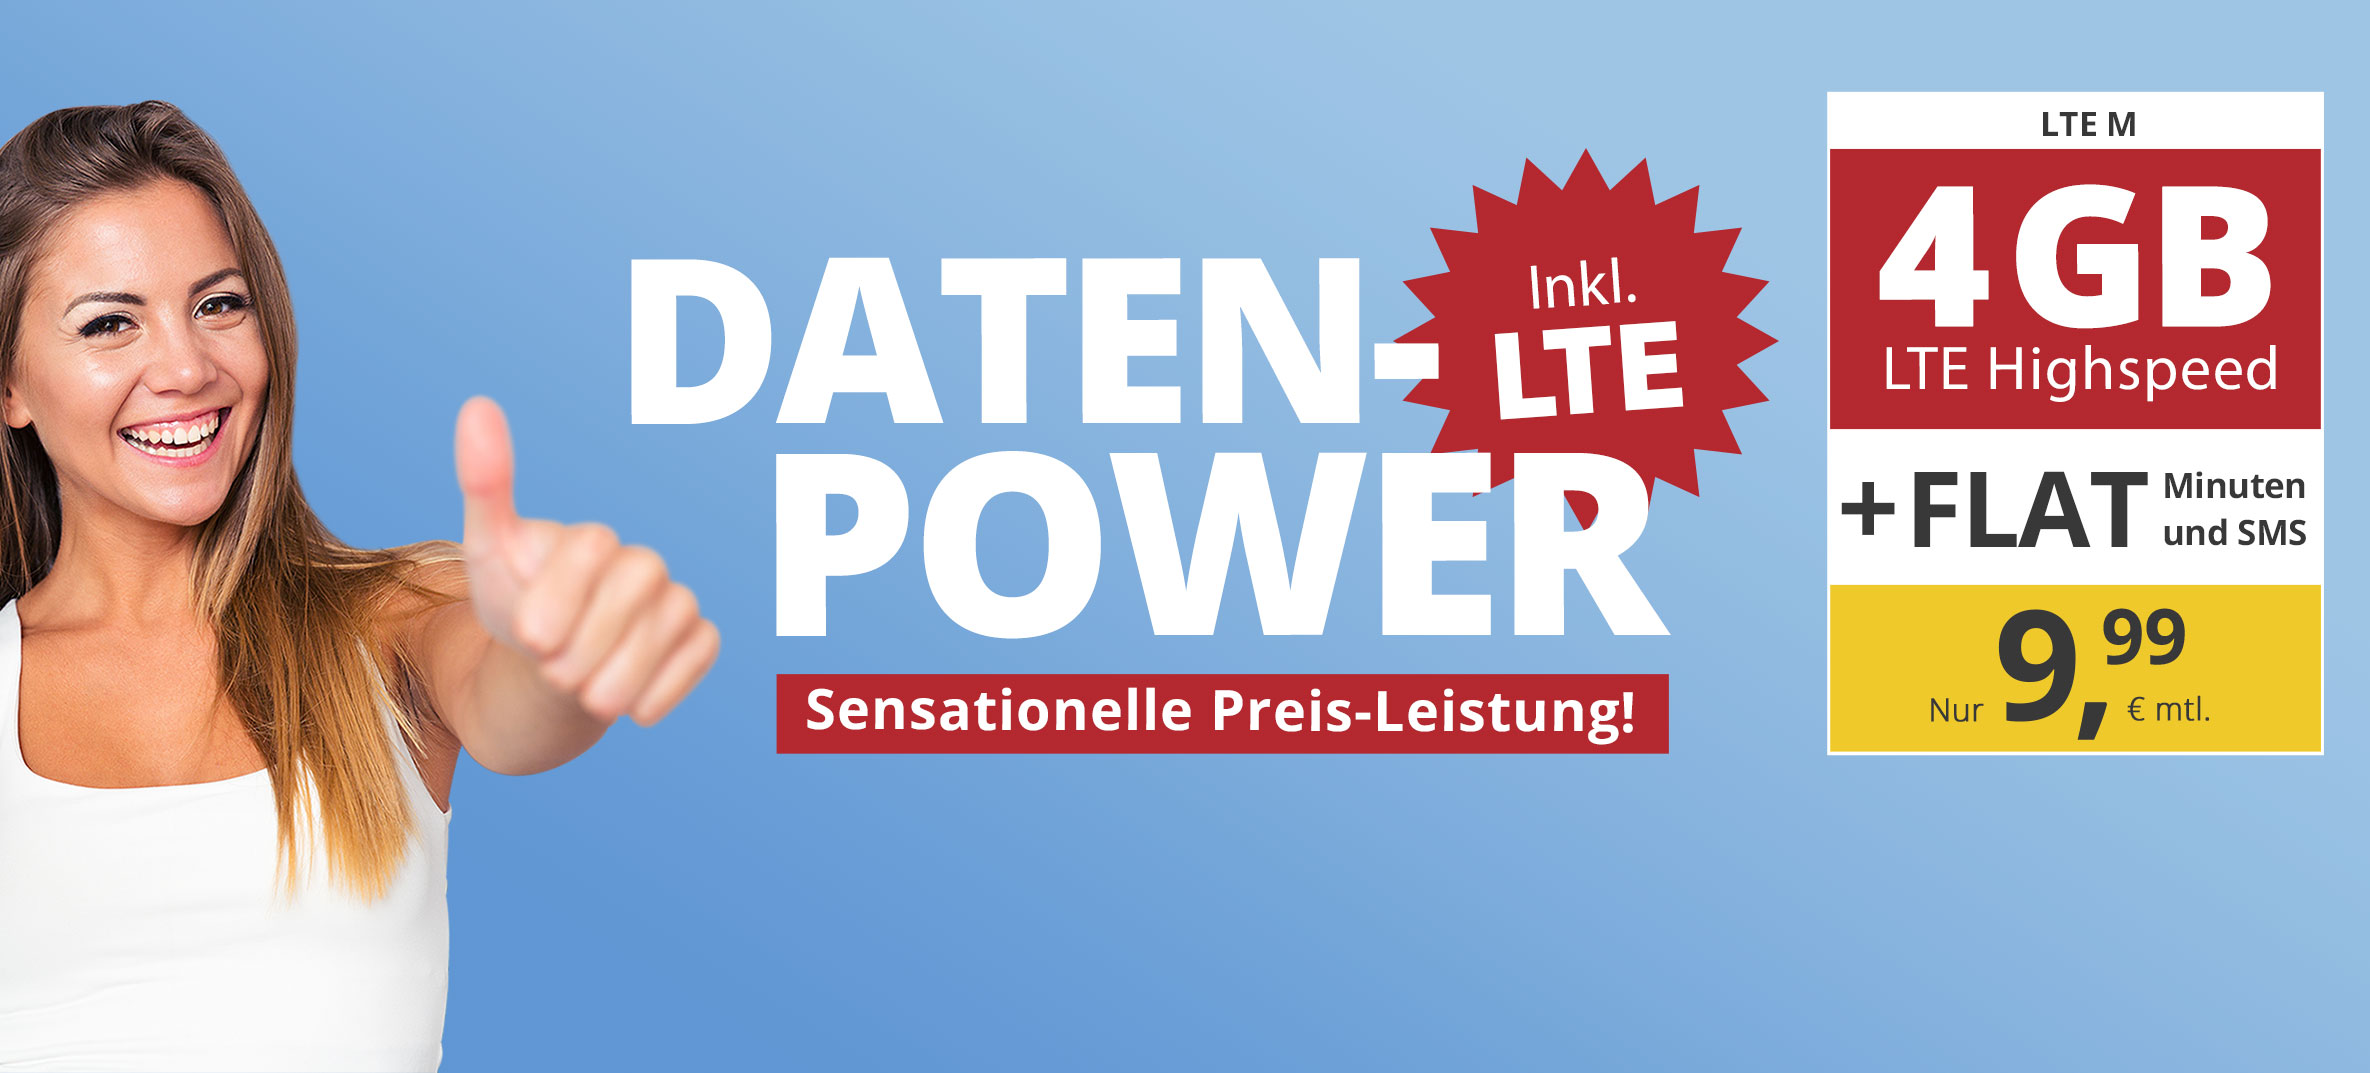 DATENPOWER